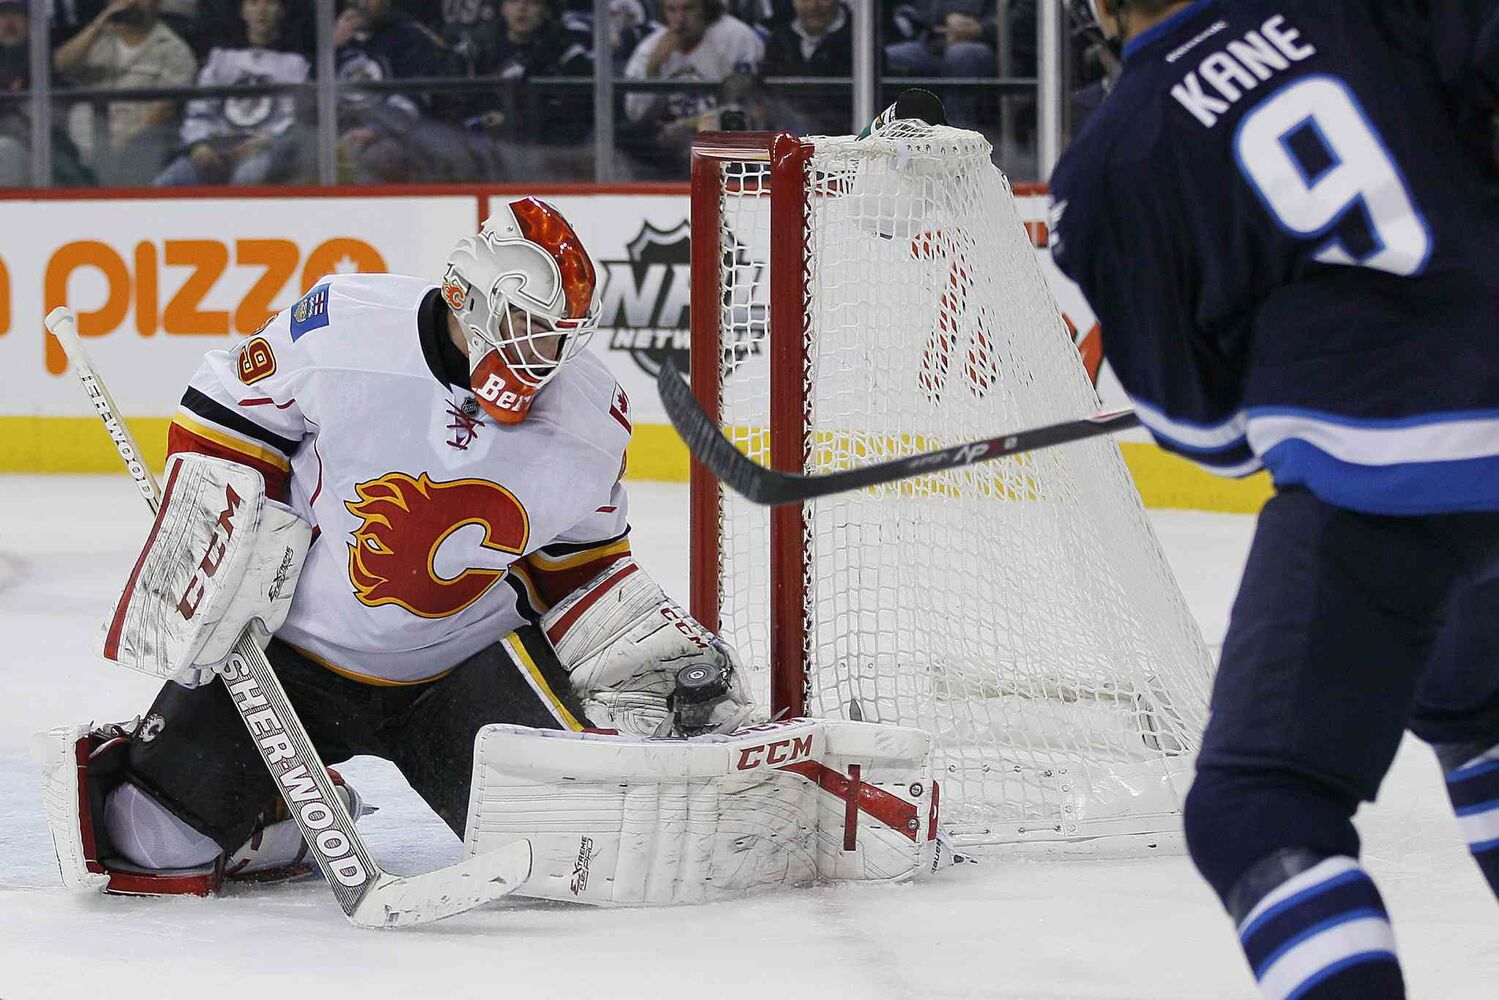 Winnipeg Jets' Evander Kane (9) gets stopped by Calgary Flames' goaltender Reto Berra (29) during second period NHL action in Winnipeg on Monday, Nov. 18, 2013.  (John Woods / Winnipeg Free Press)